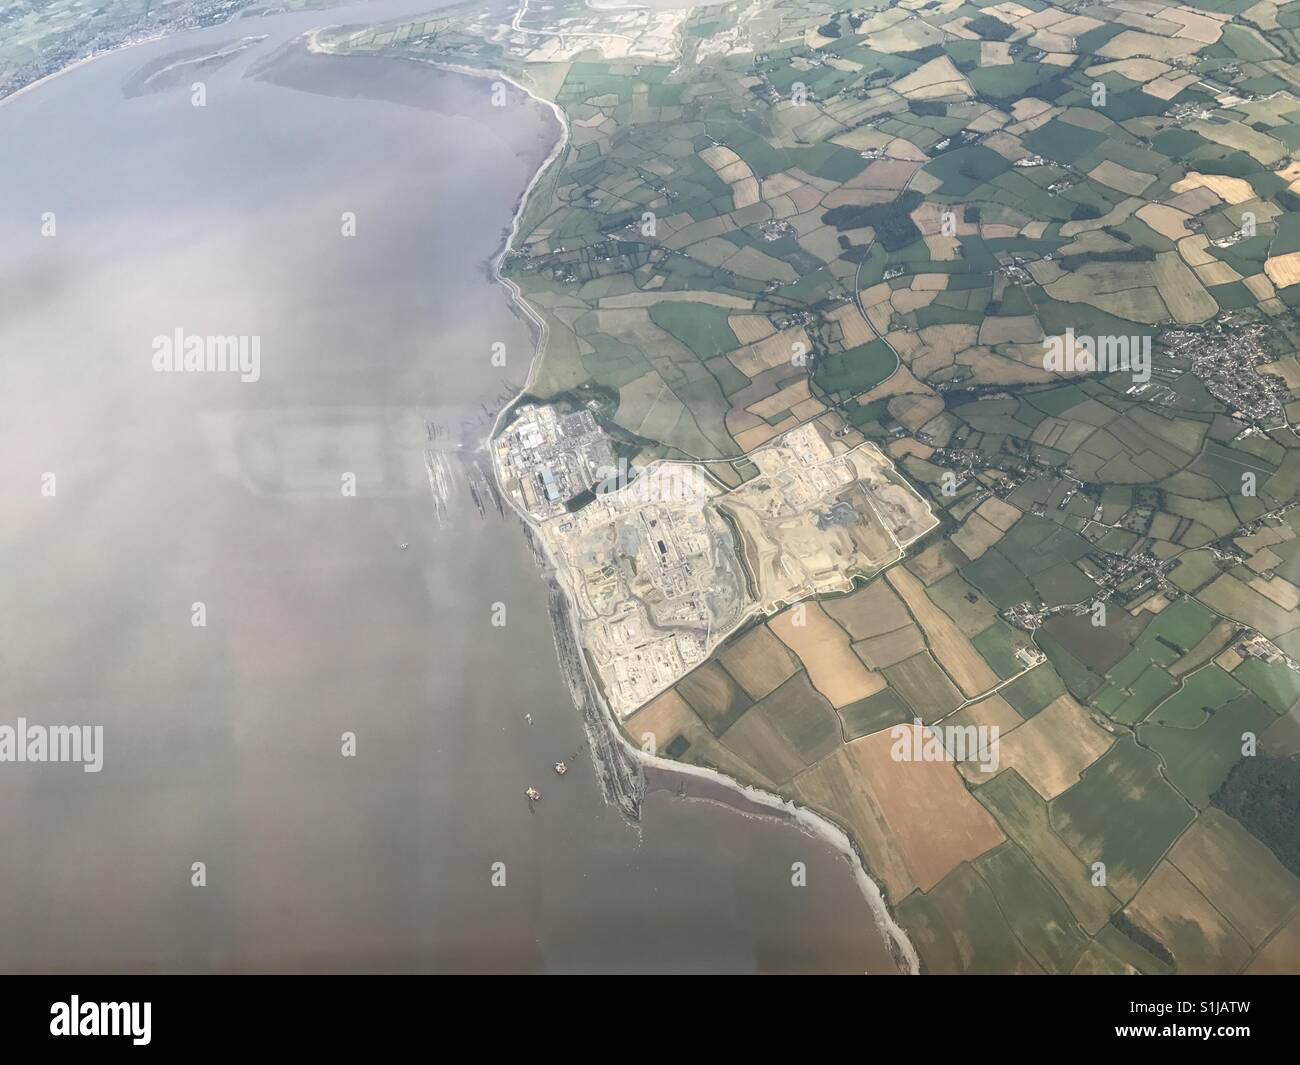 Hinkley point power station from the air showing how big it actually is. - Stock Image